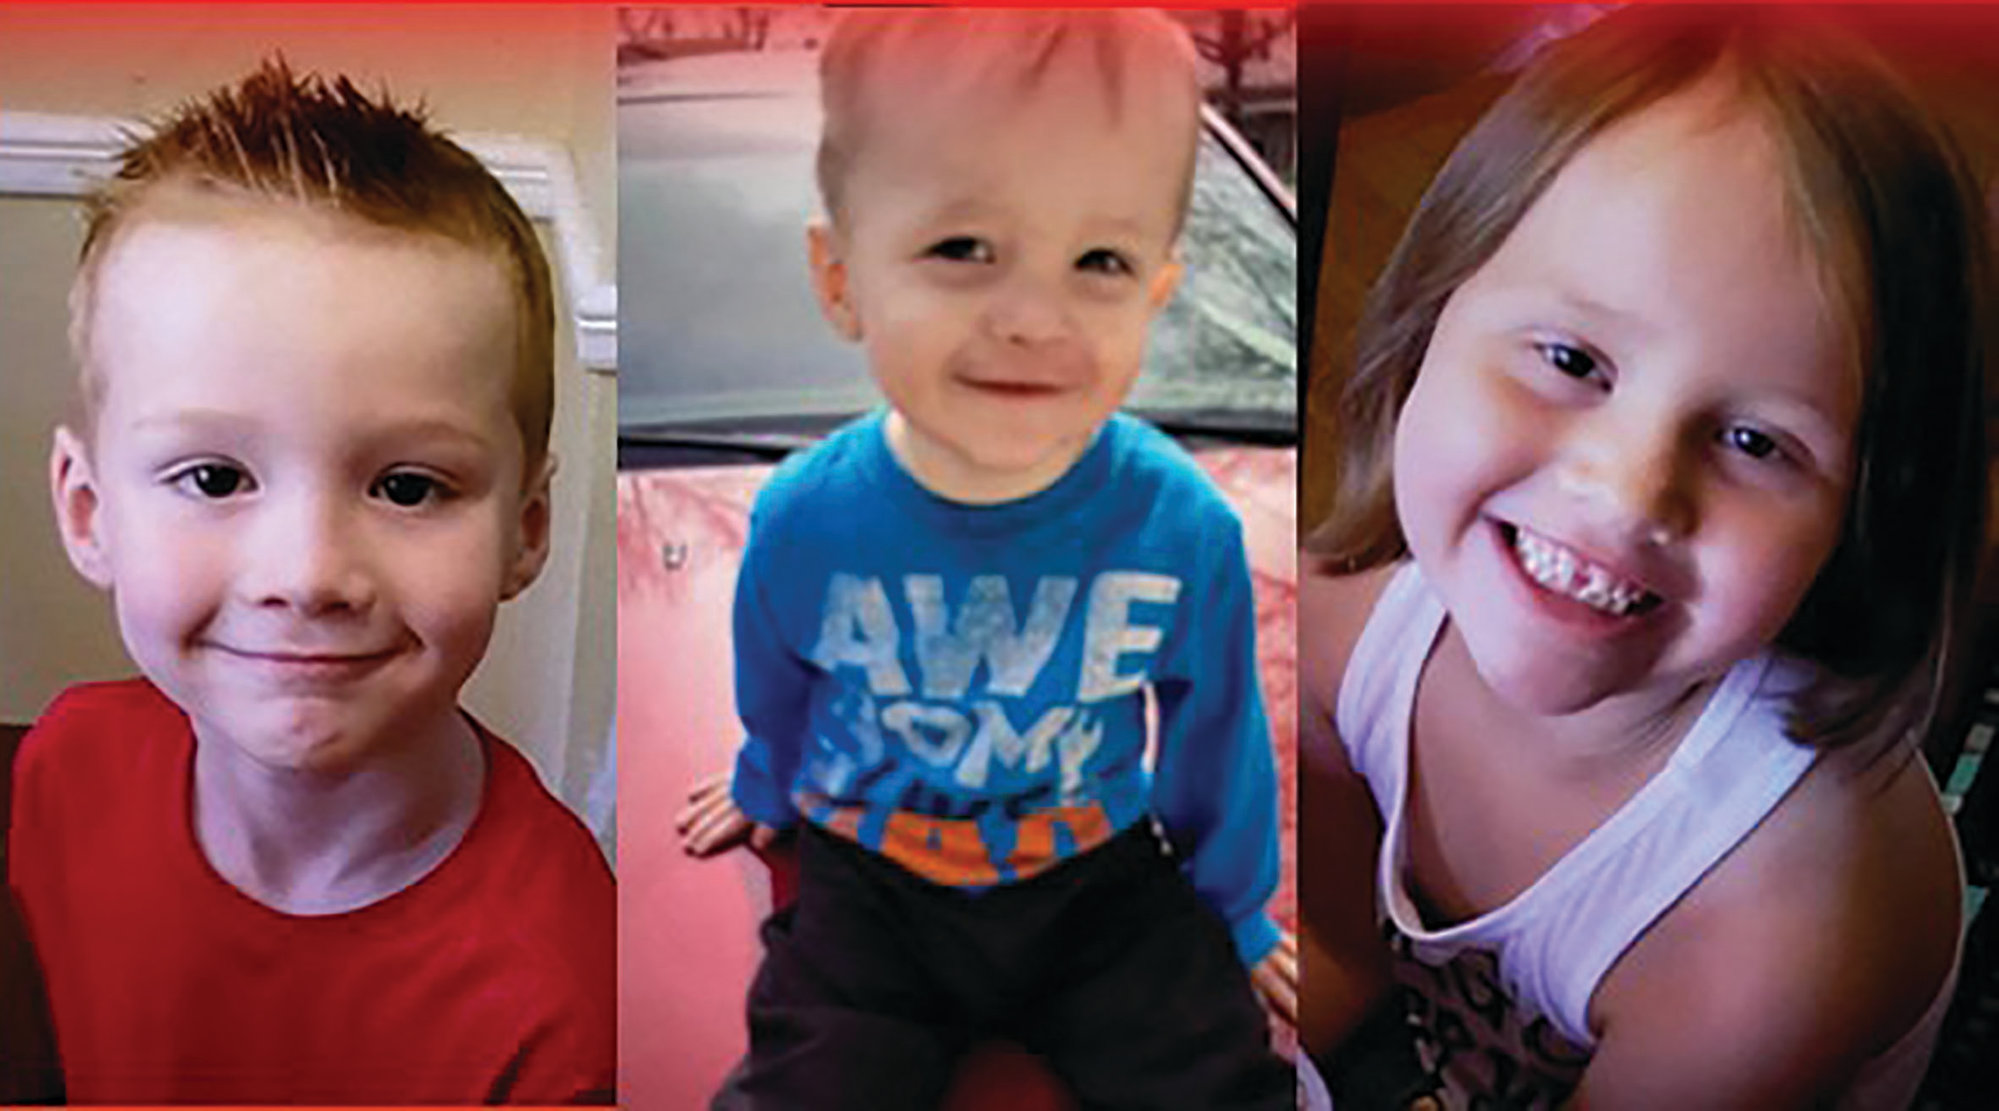 PHOTO PROVIDEDTaken from an Amber Alert poster, are photos of three children found safely in Clarendon County: Cameron Allison, 6; Colin Allison, 1 1/2; and Emma Allison, 6.